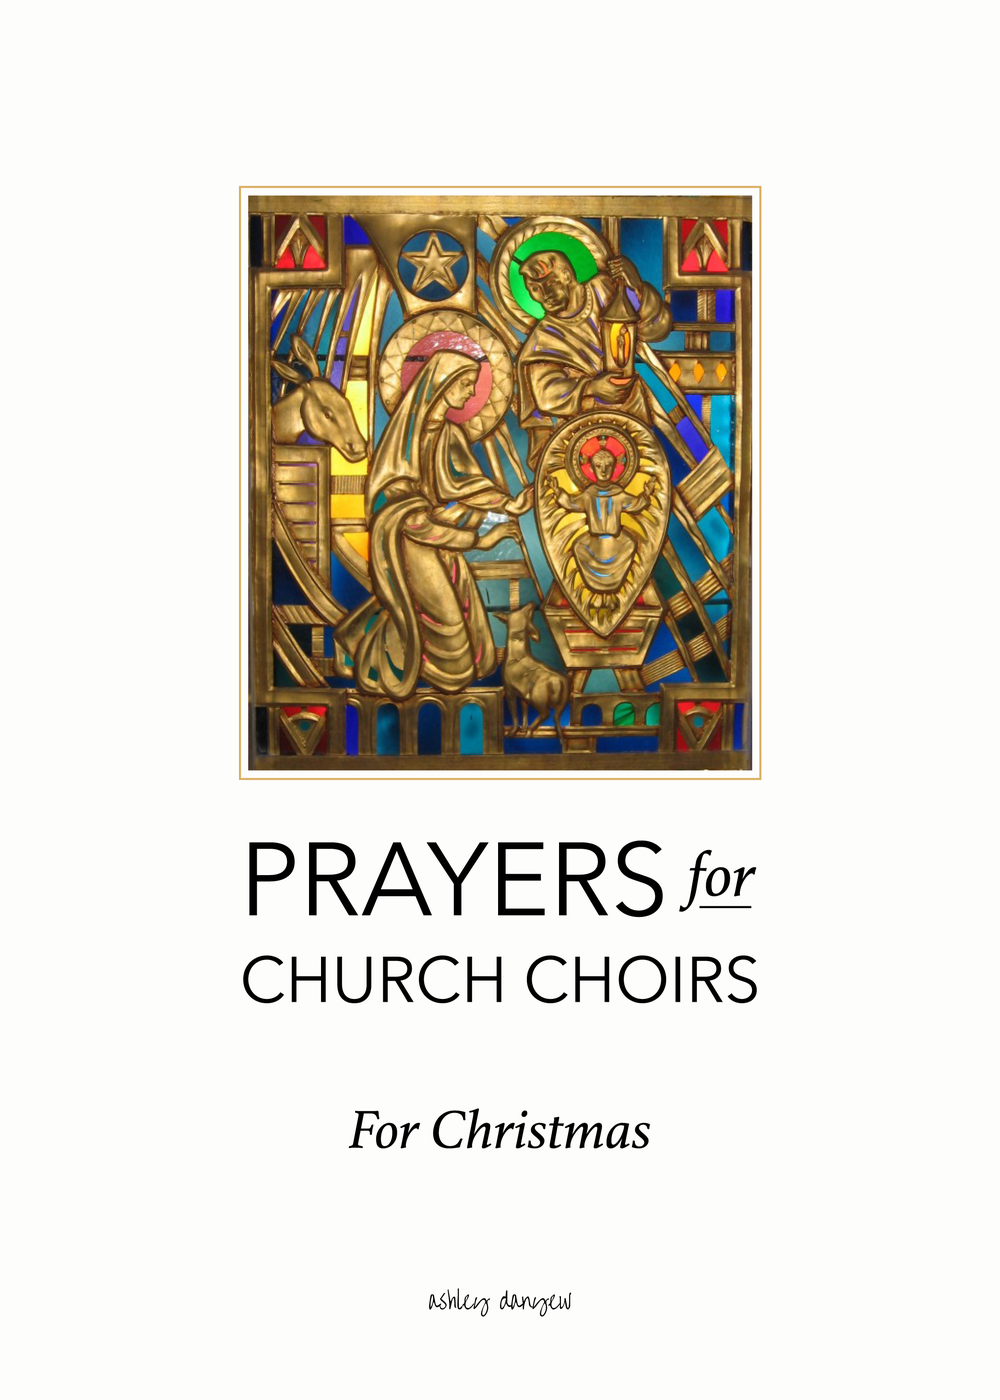 Copy of Prayers for Church Choirs: For Christmas